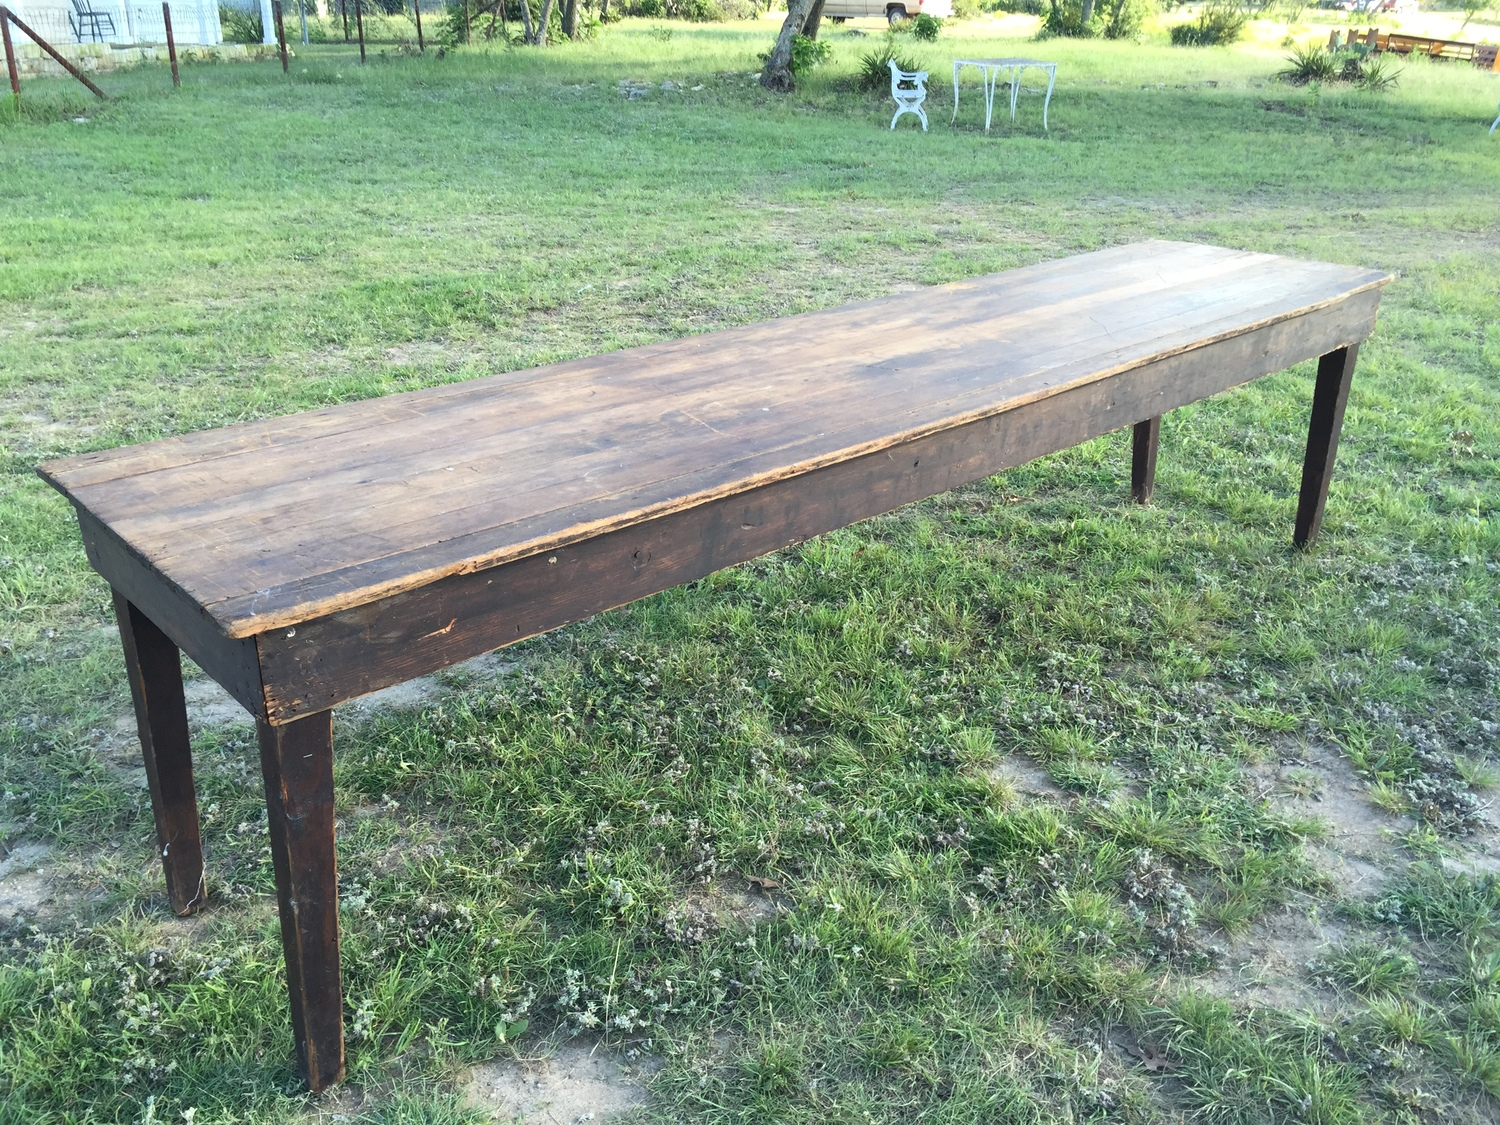 Vintage Farm Table Rentals 10 Ft Dark Wood Farm Table